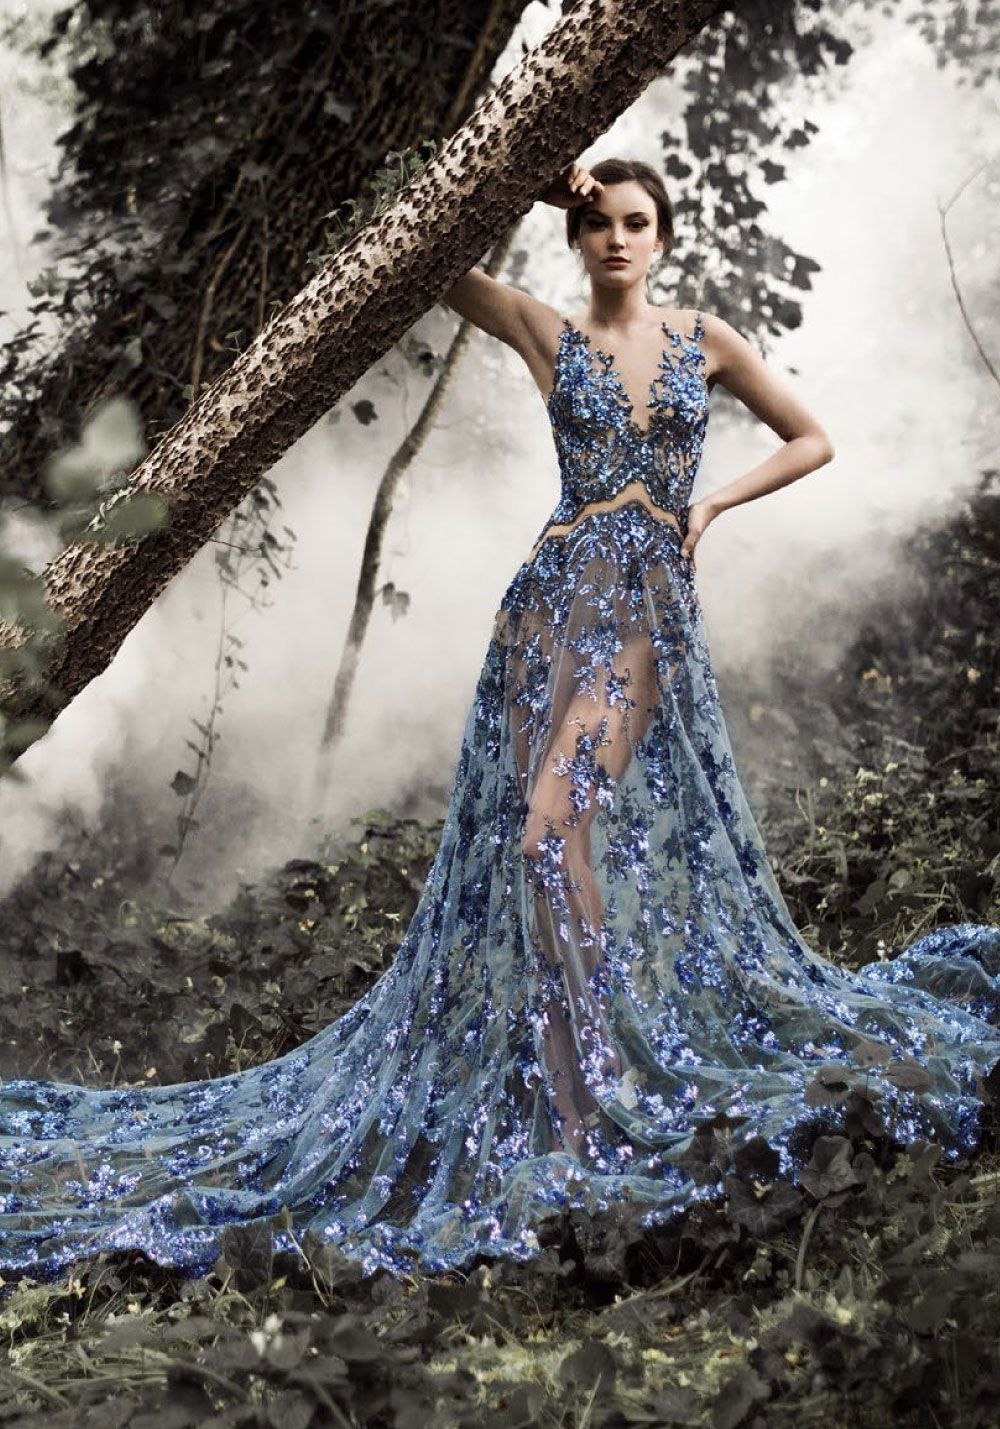 aw couture paolo sebastian photoshoot pinterest paolo